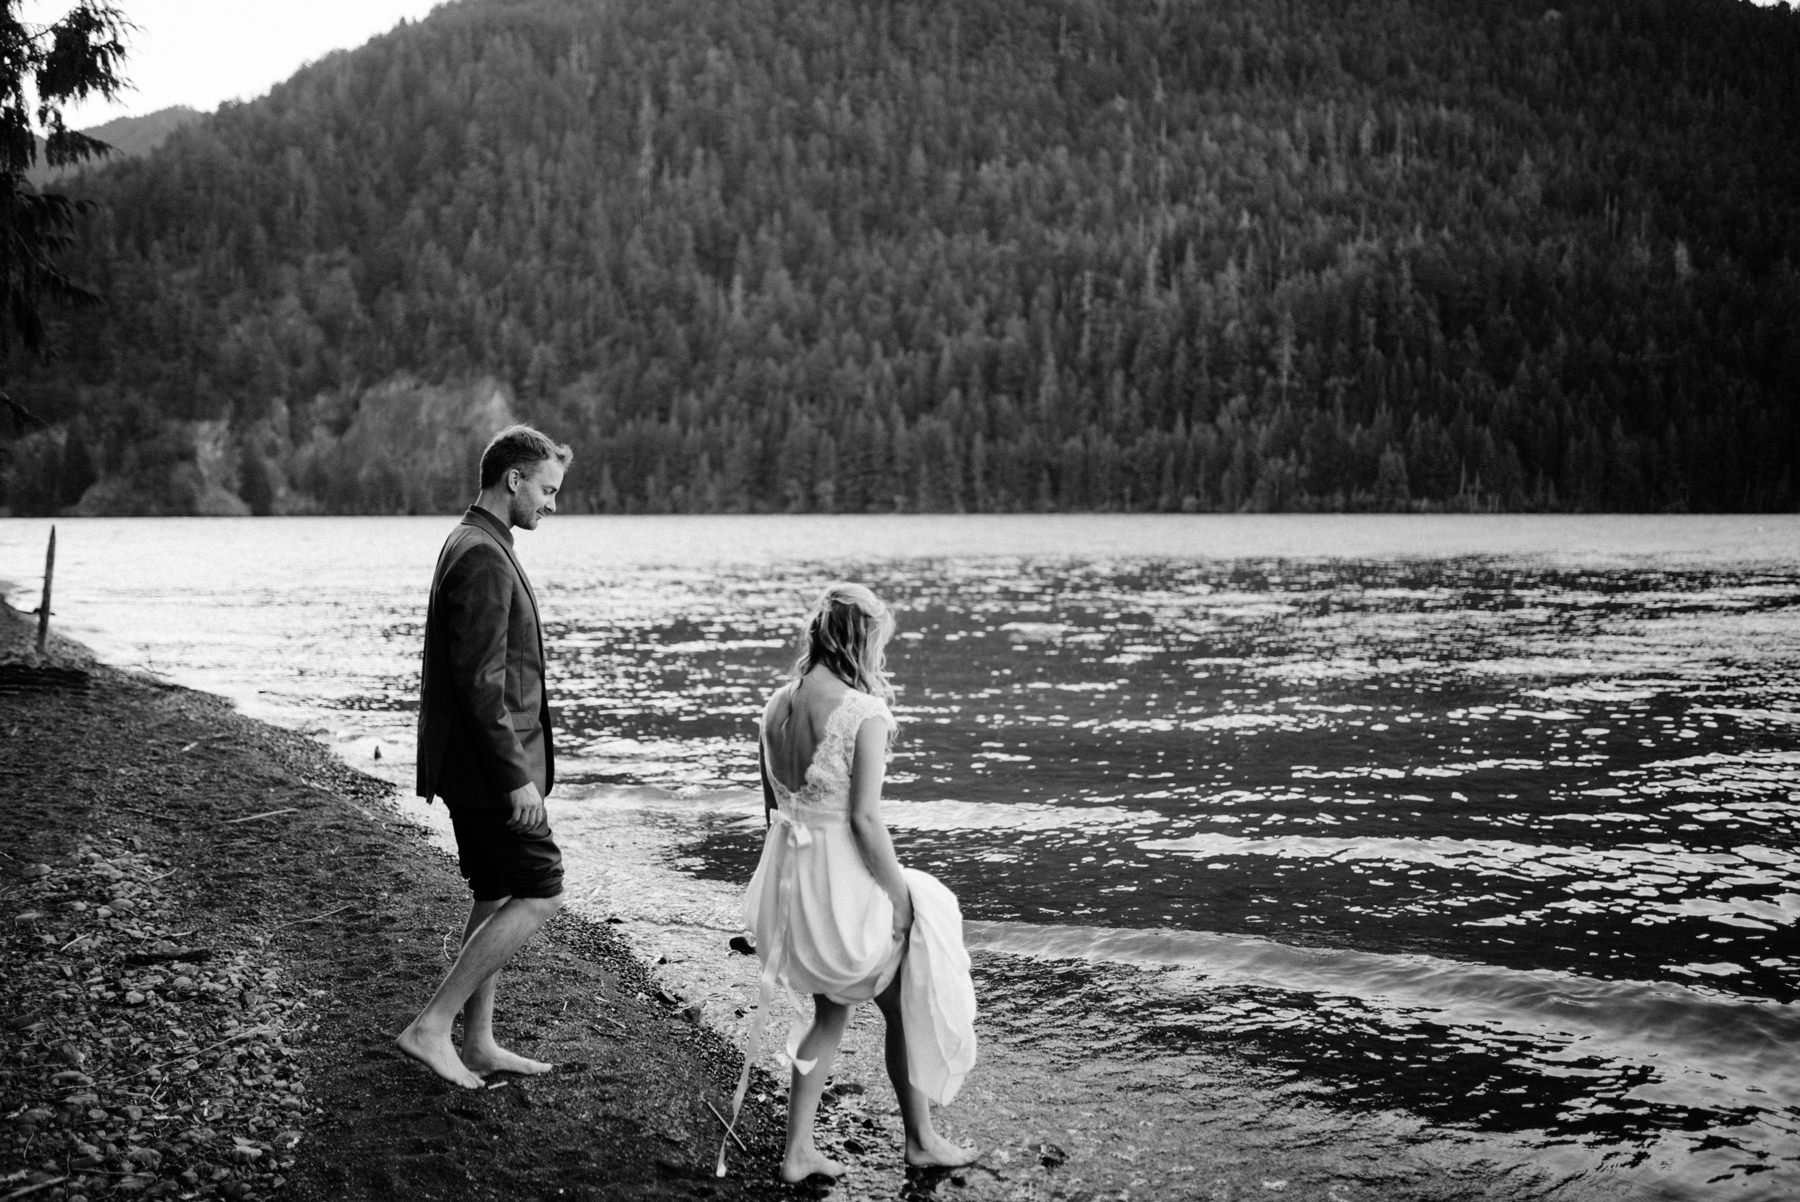 182-bride-and-groom-in-a-canoe-across-lake-crescent-by-nature-bridge.jpg